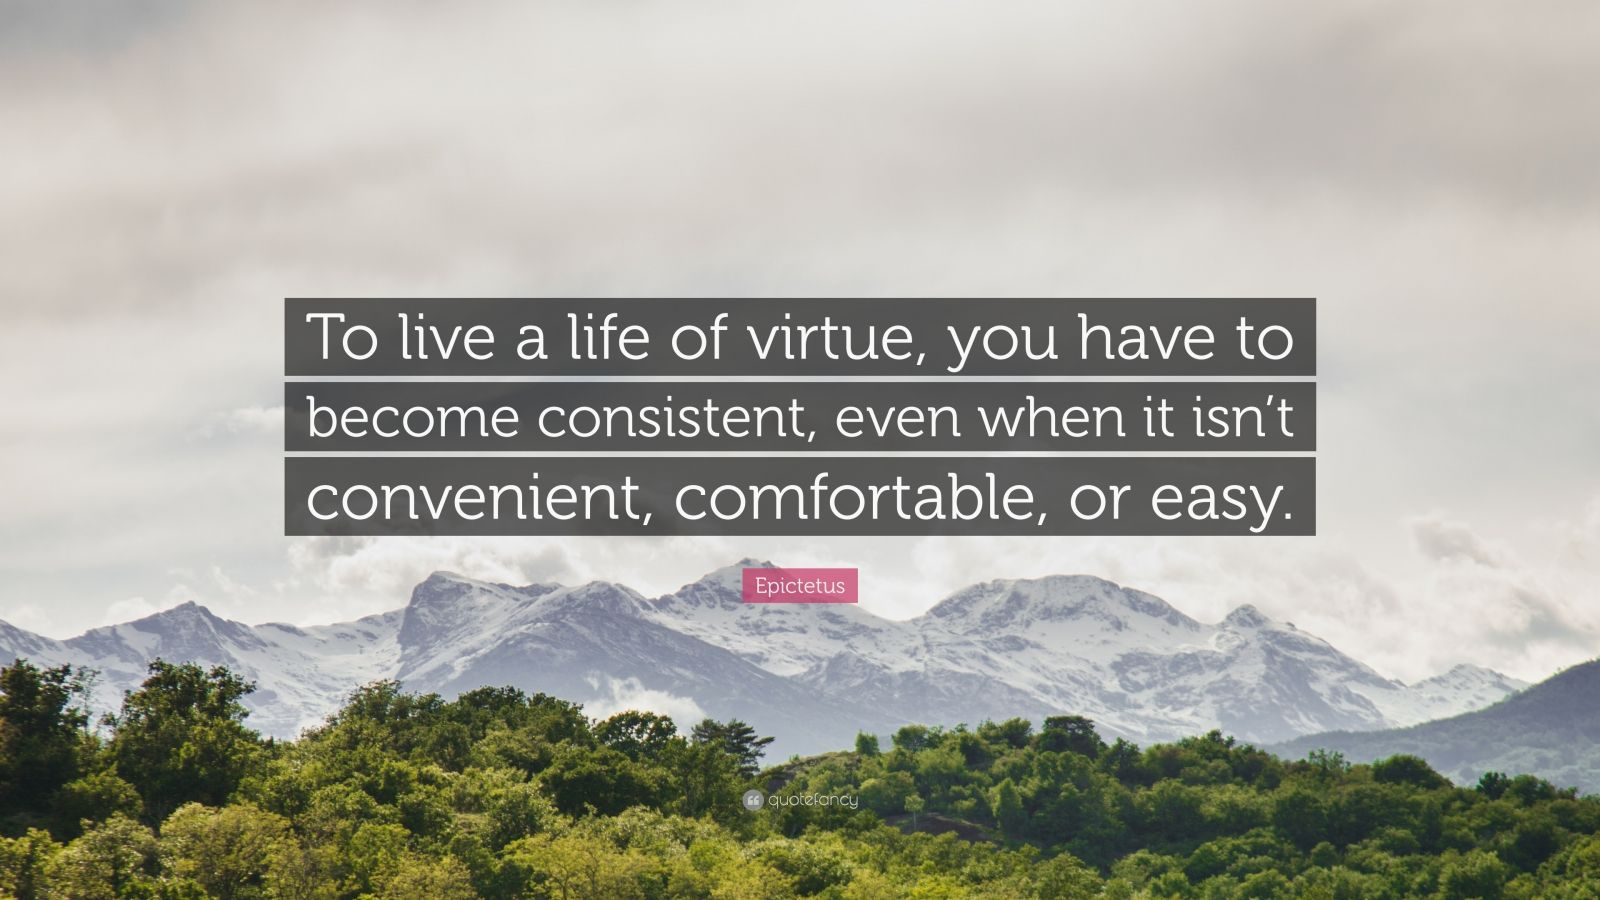 """Epictetus Quote: """"To live a life of virtue, you have to become consistent, even when it isn't convenient, comfortable, or easy."""""""